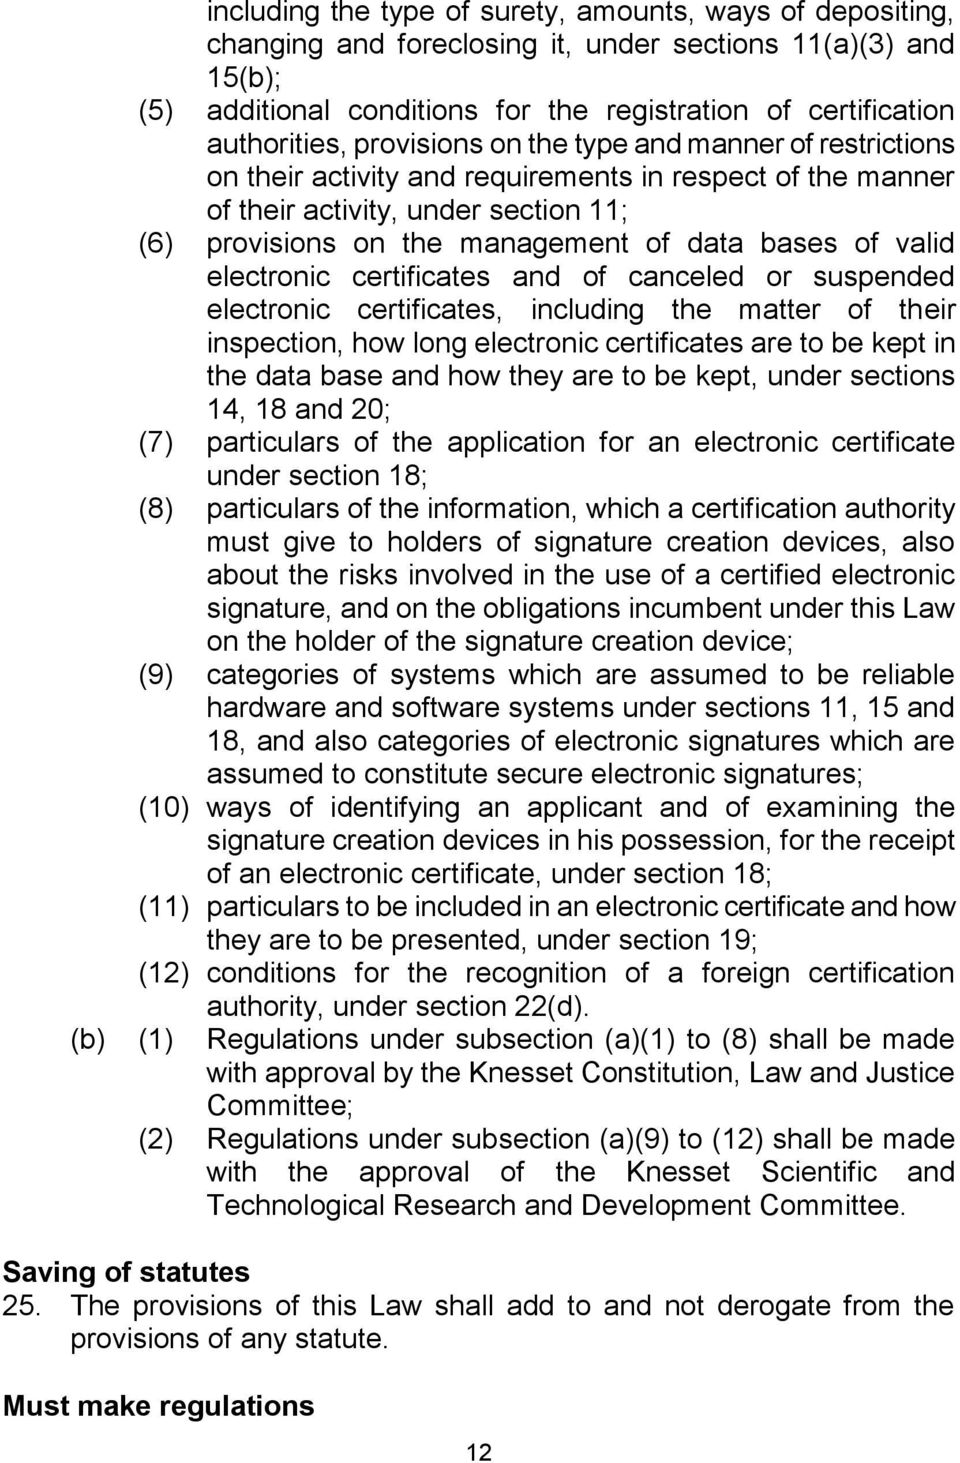 valid electronic certificates and of canceled or suspended electronic certificates, including the matter of their inspection, how long electronic certificates are to be kept in the data base and how